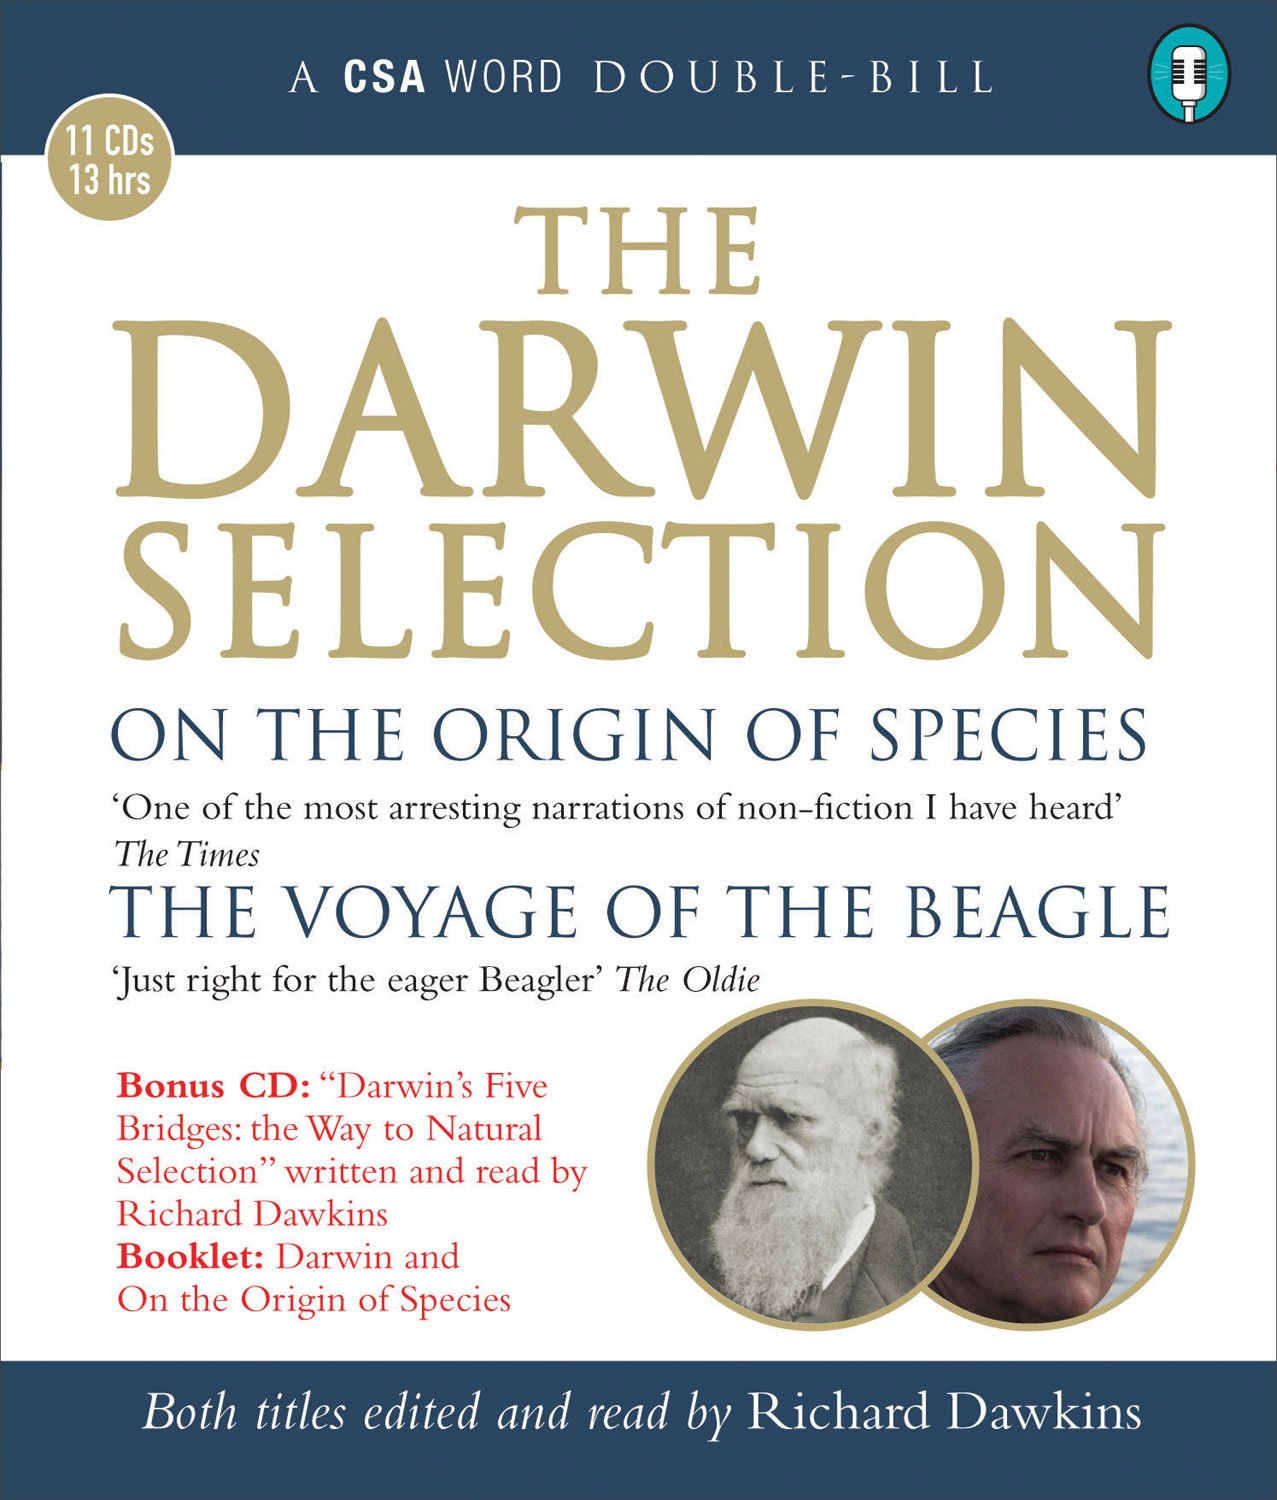 The Darwin Selection - On the Origin of Species and The Voyage of the Beagle - Charles Darwin